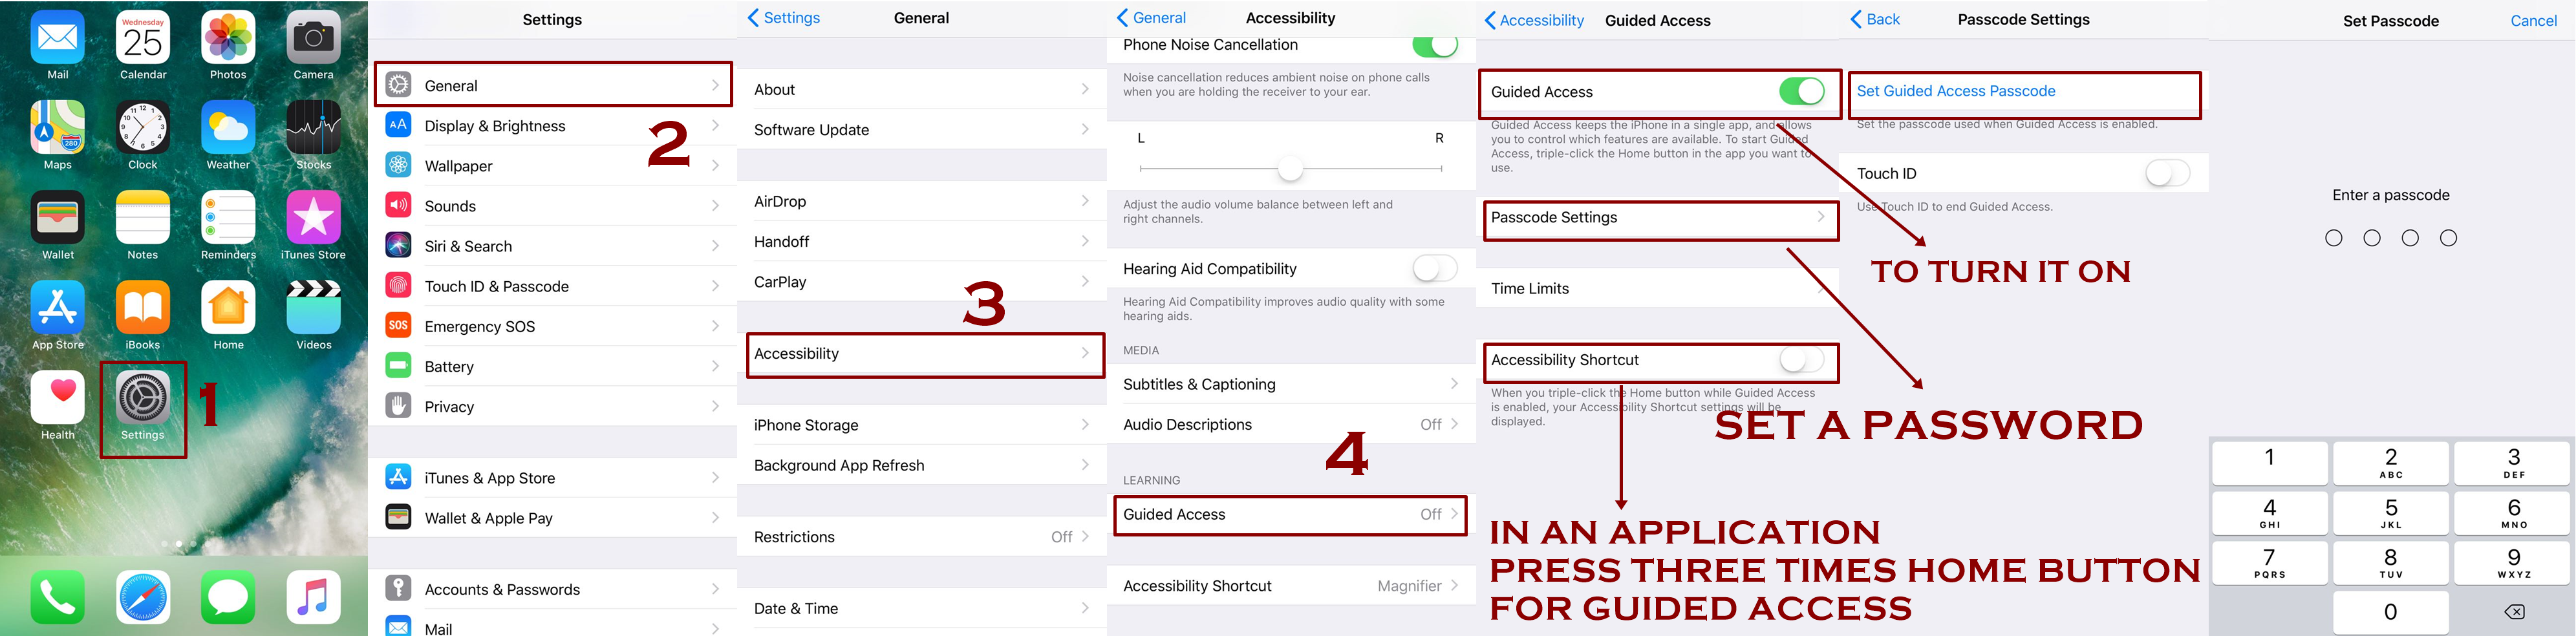 how to enable guided access iphone - How to Enable and use Guided Access on iPhone